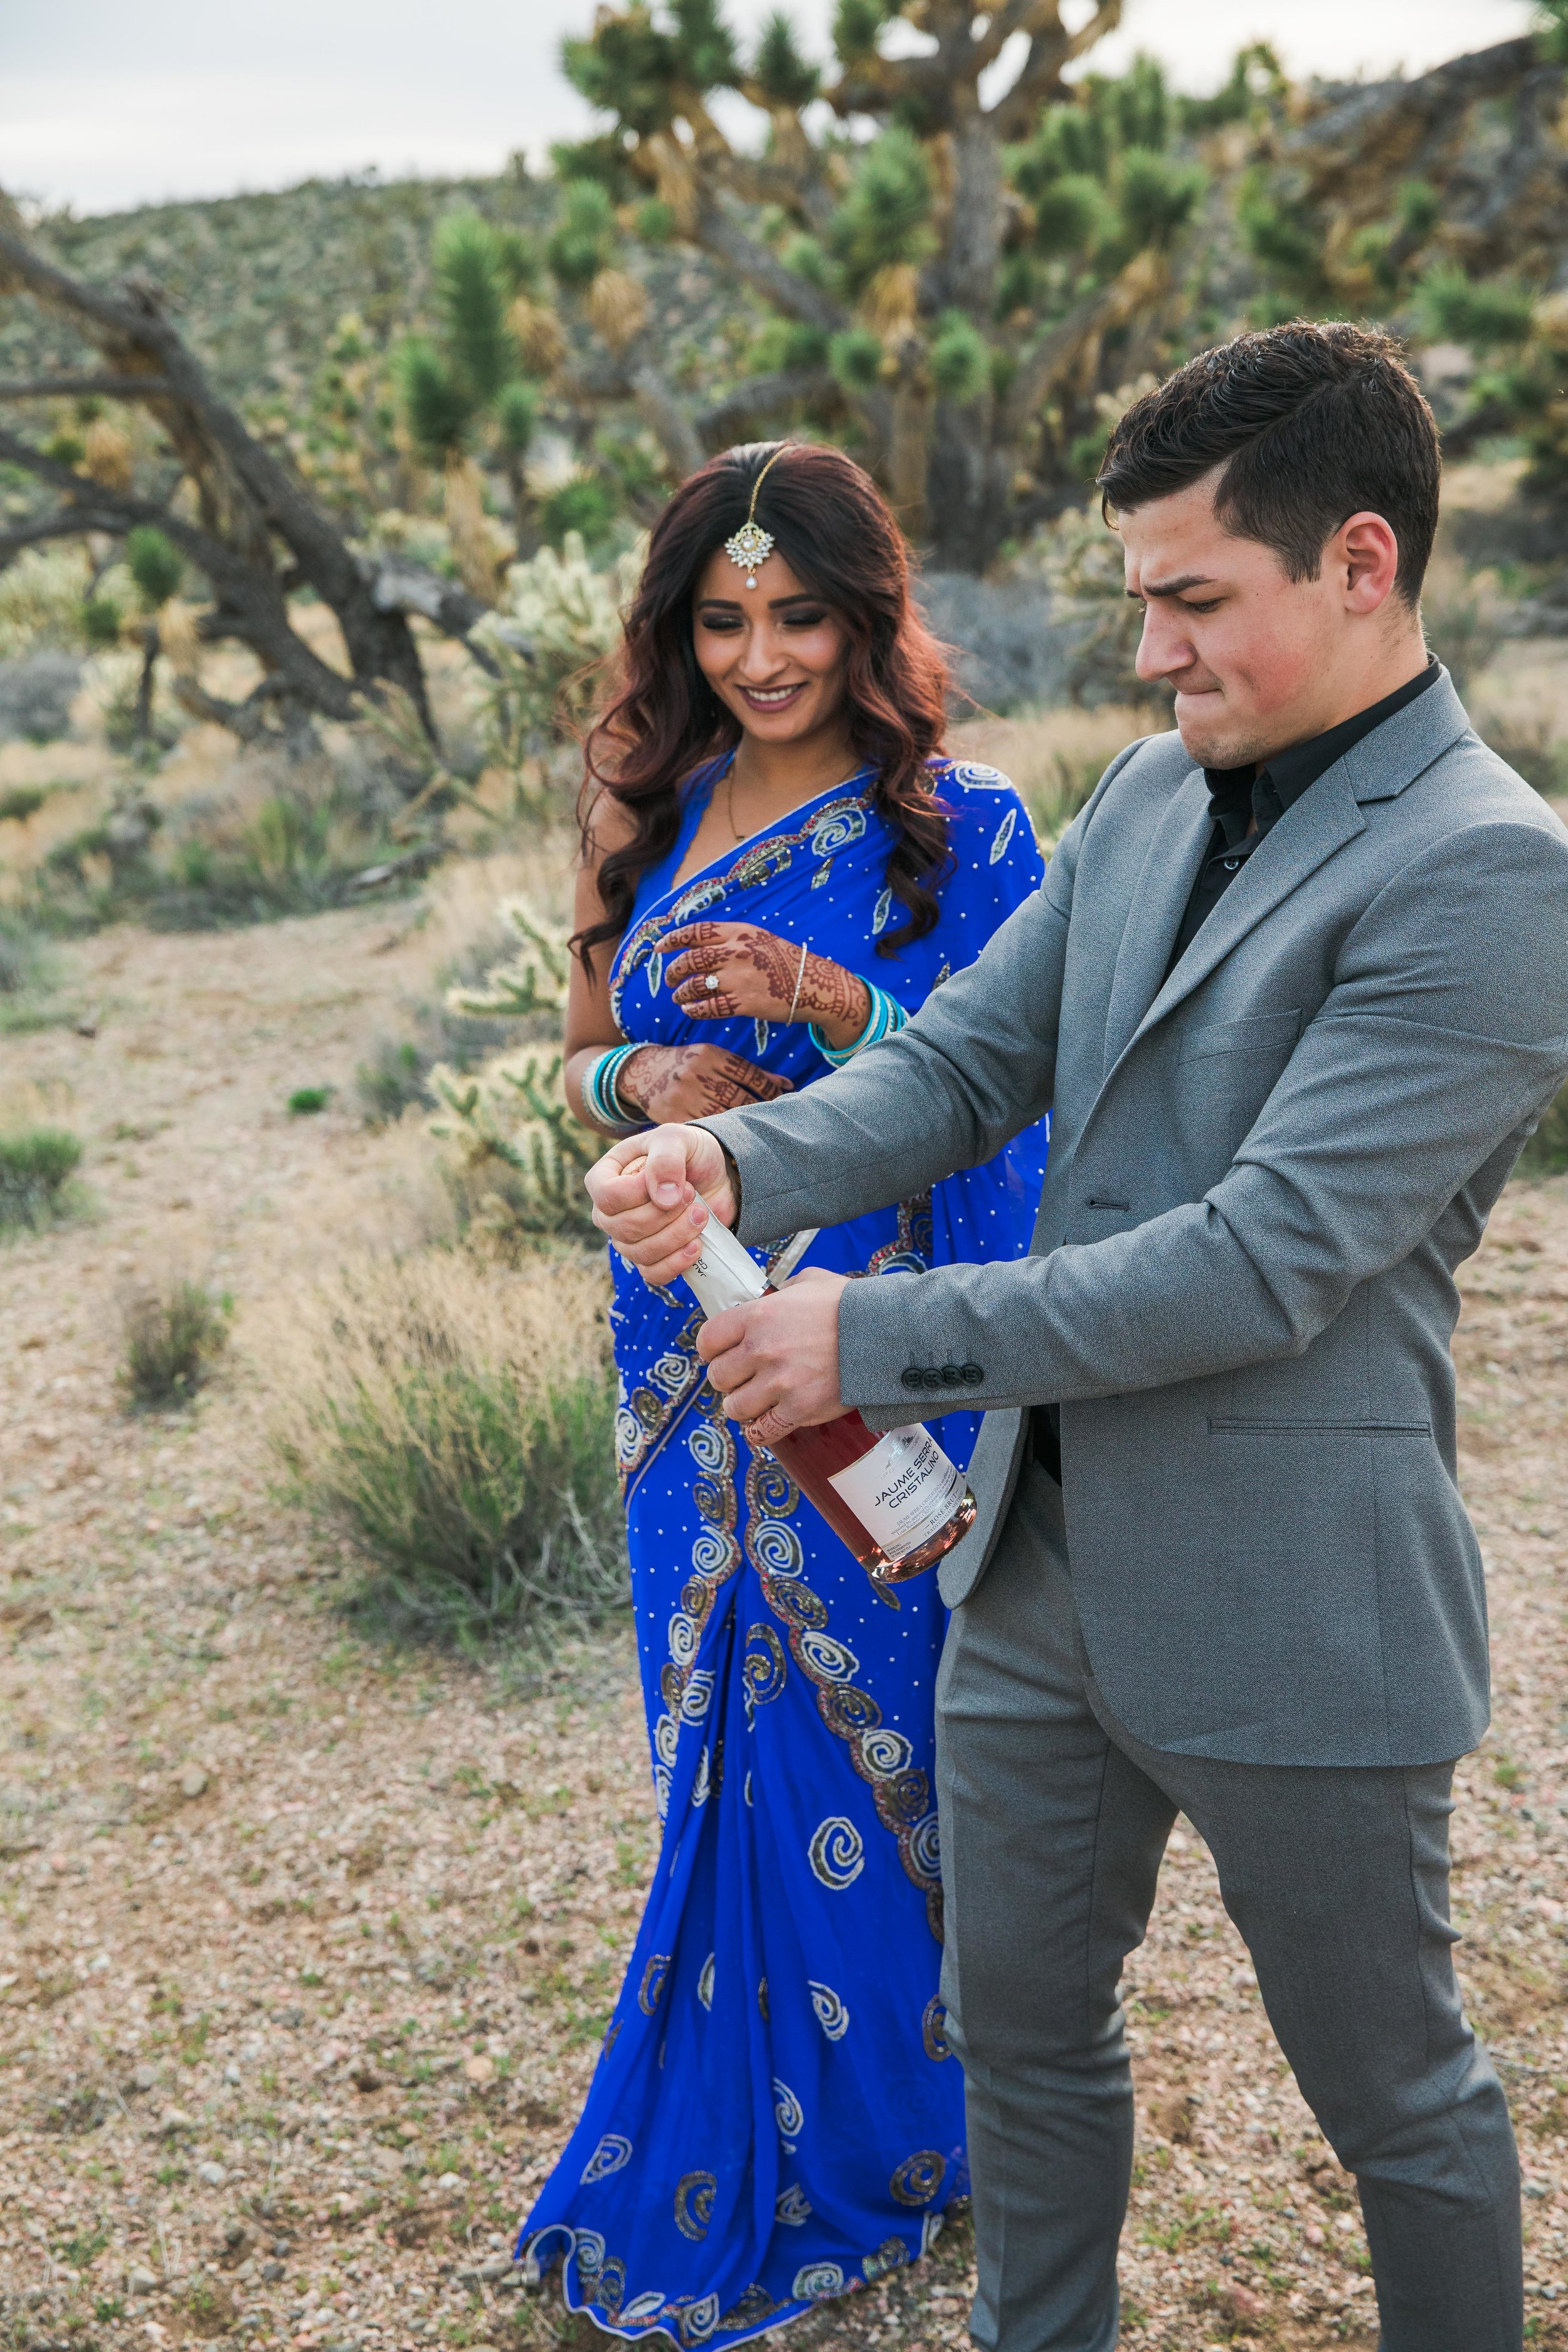 Champagne in the desert Joshua Tree Elopement Kyle Loves Tori Photography